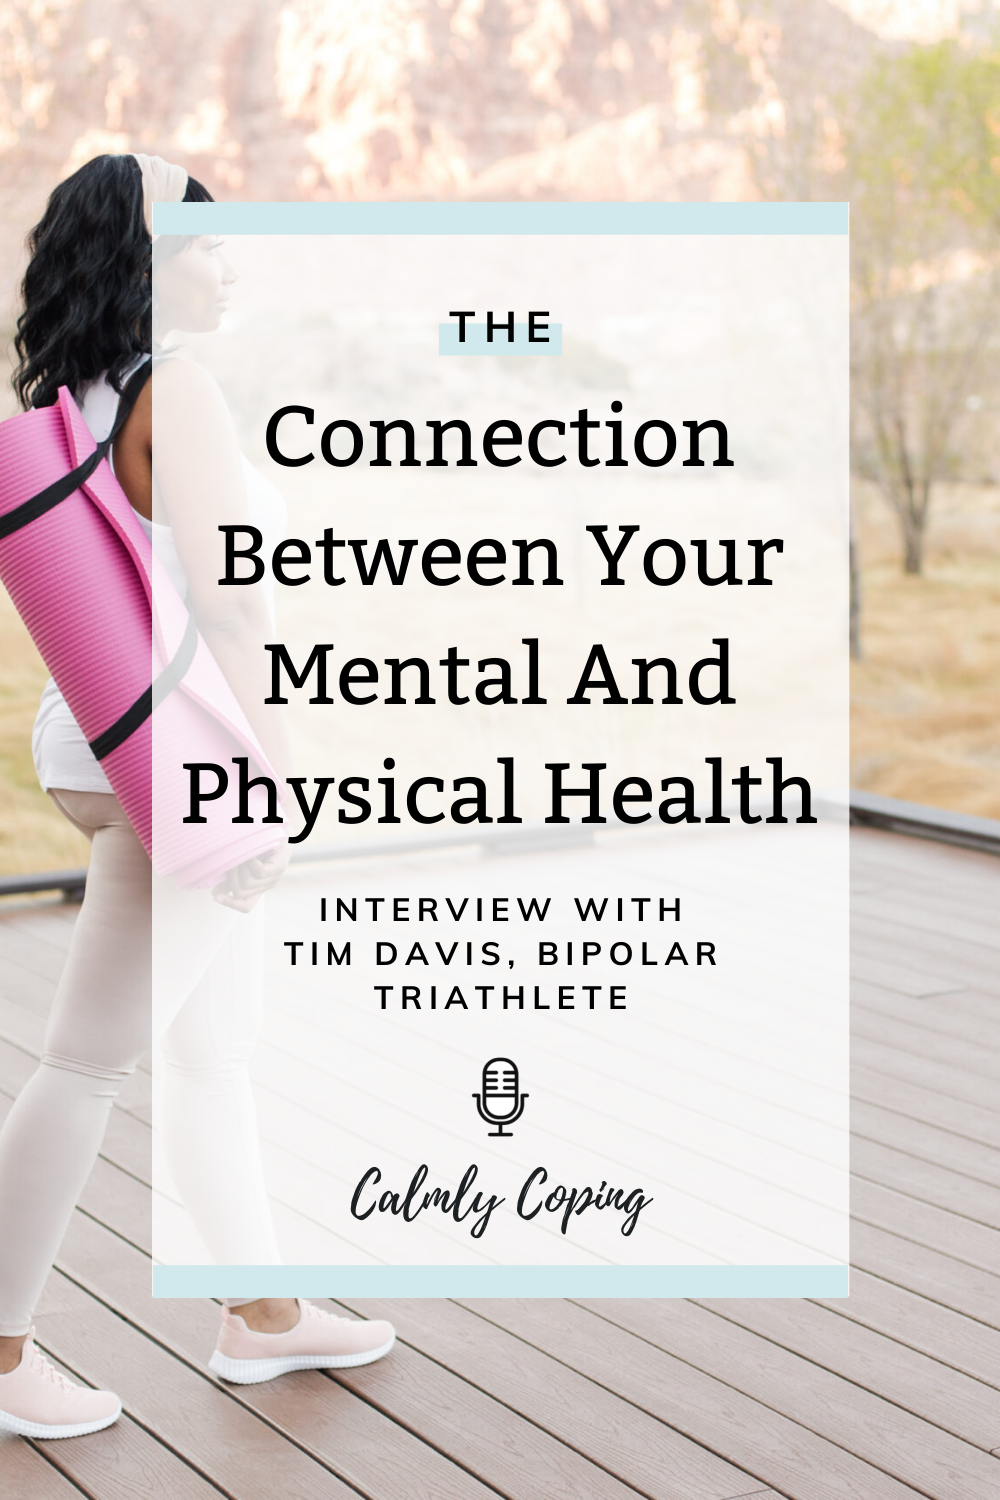 The Connection Between Your Mental And Physical Health with Tim Davis